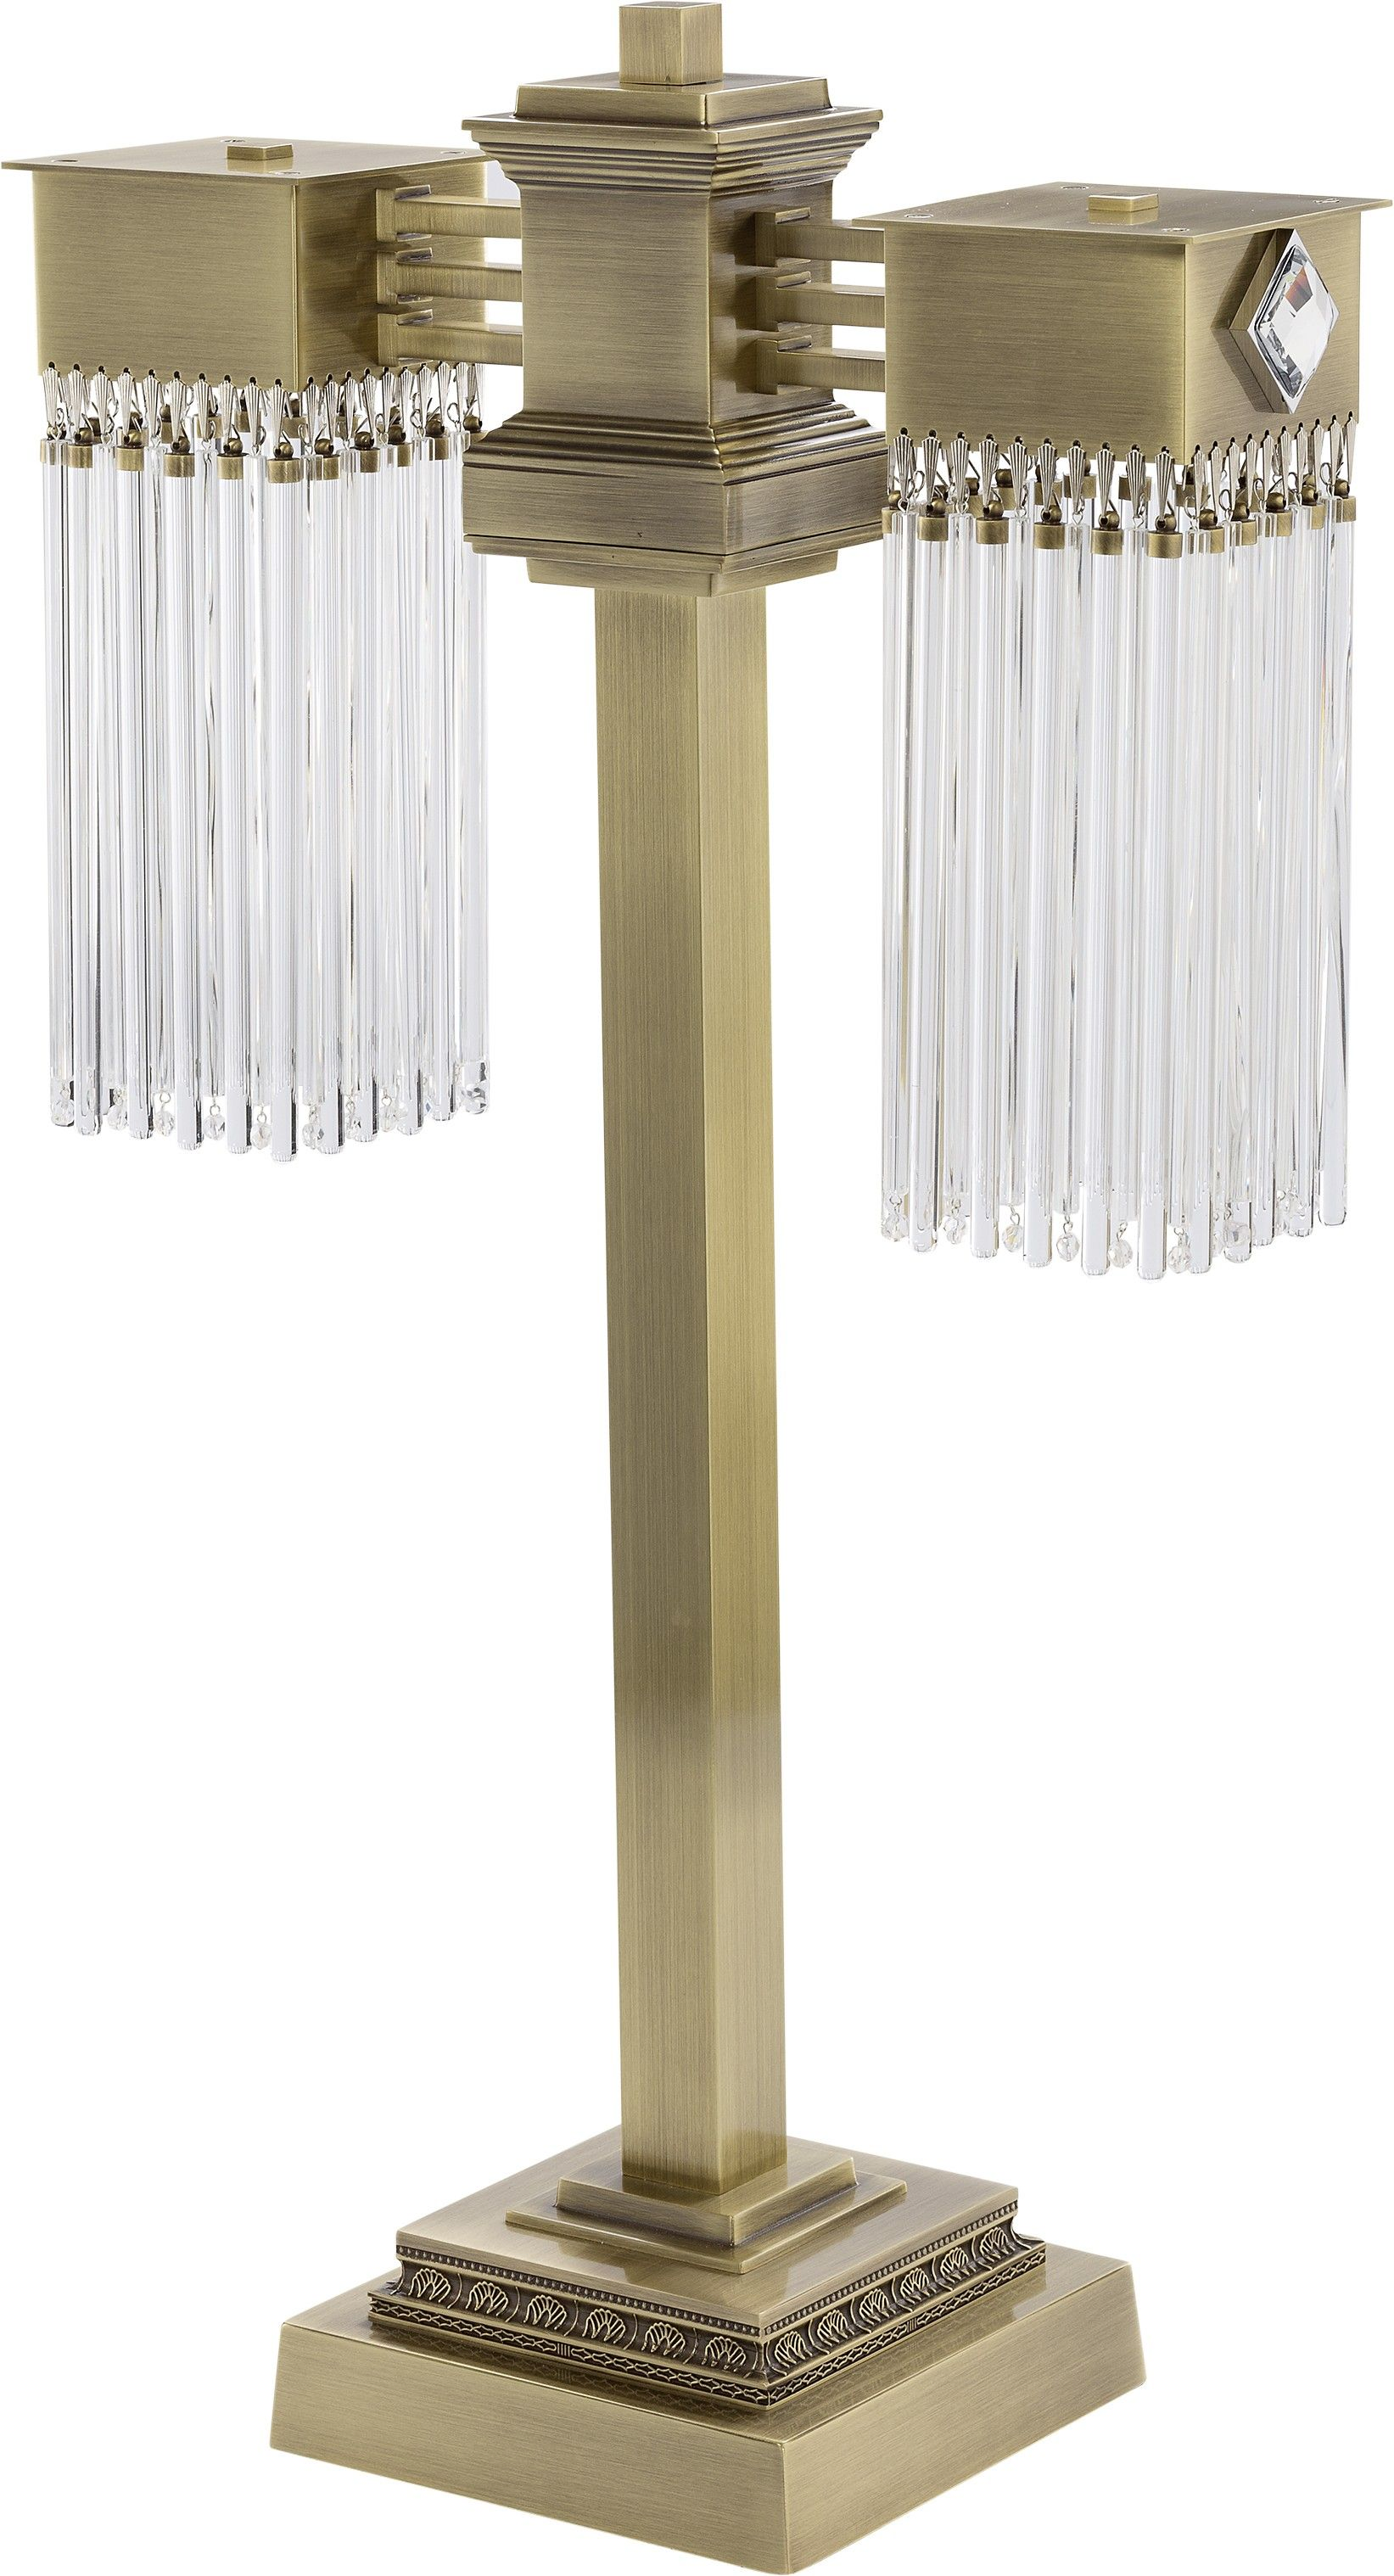 Designer Brass Table Lamp Carino With 2 Glass Shades Lamp